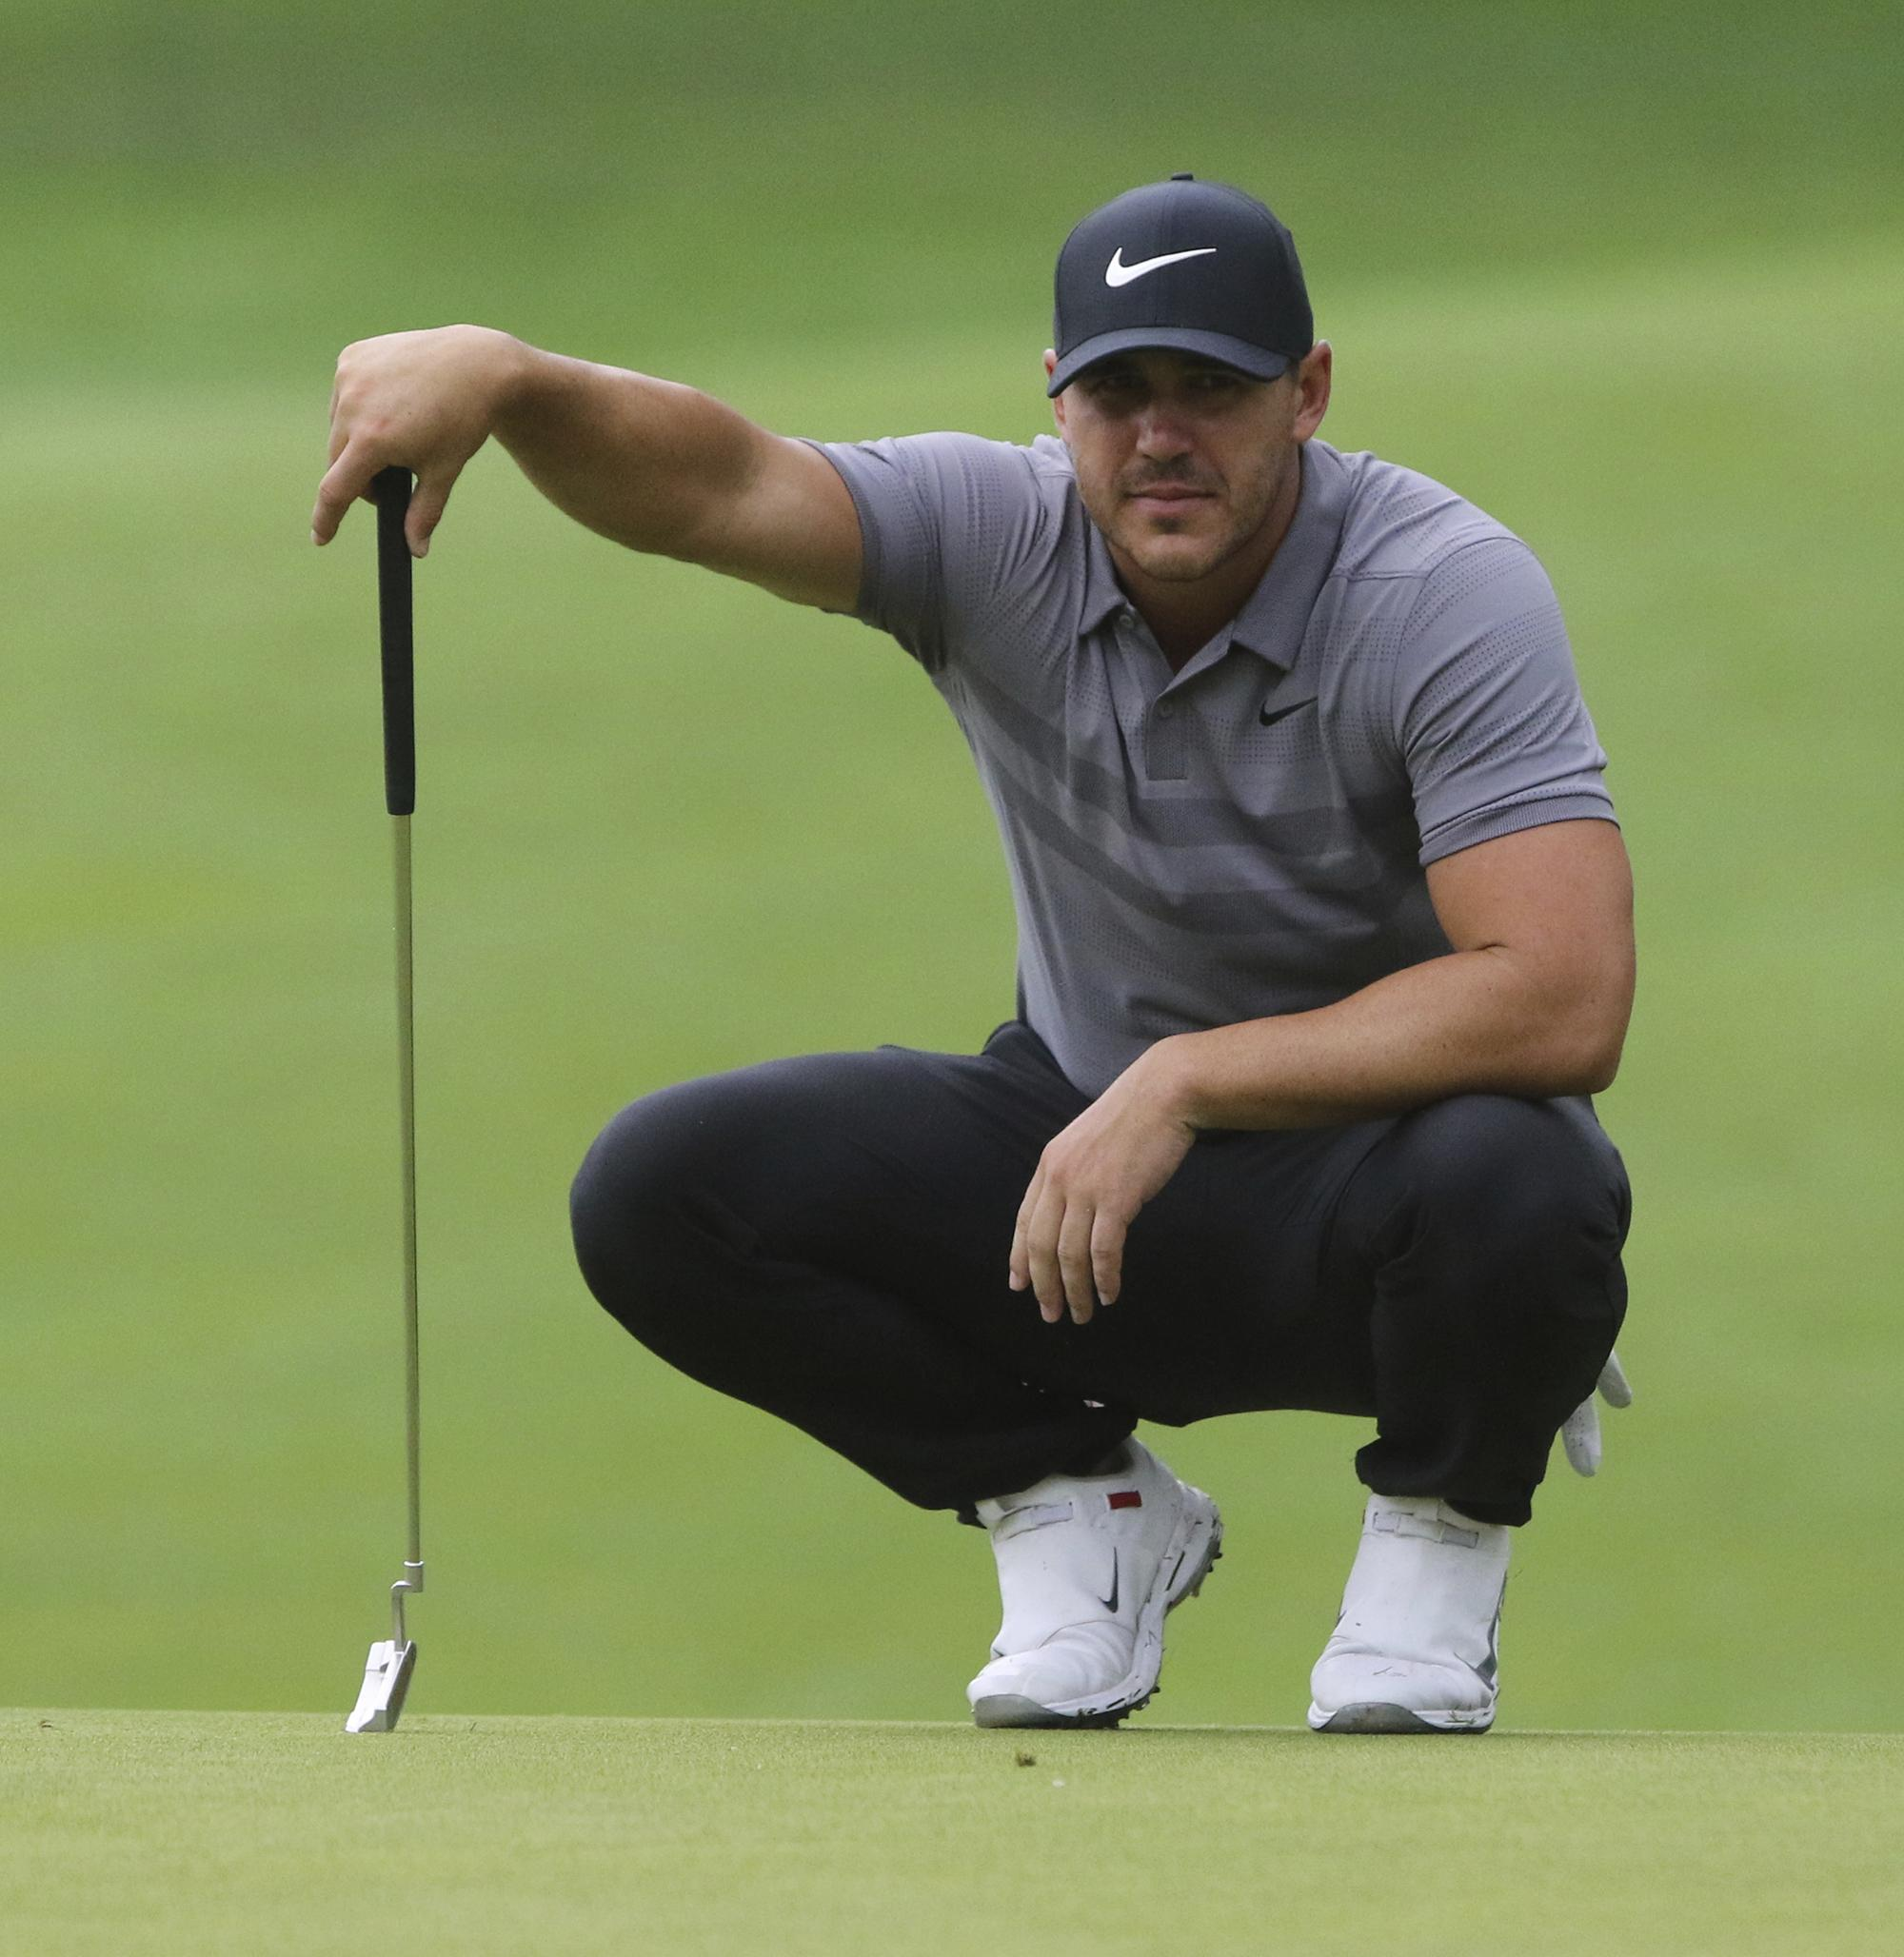 dc164e85 Brooks Koepka lines up a putt during a practice round for the Northern  Trust golf tournament